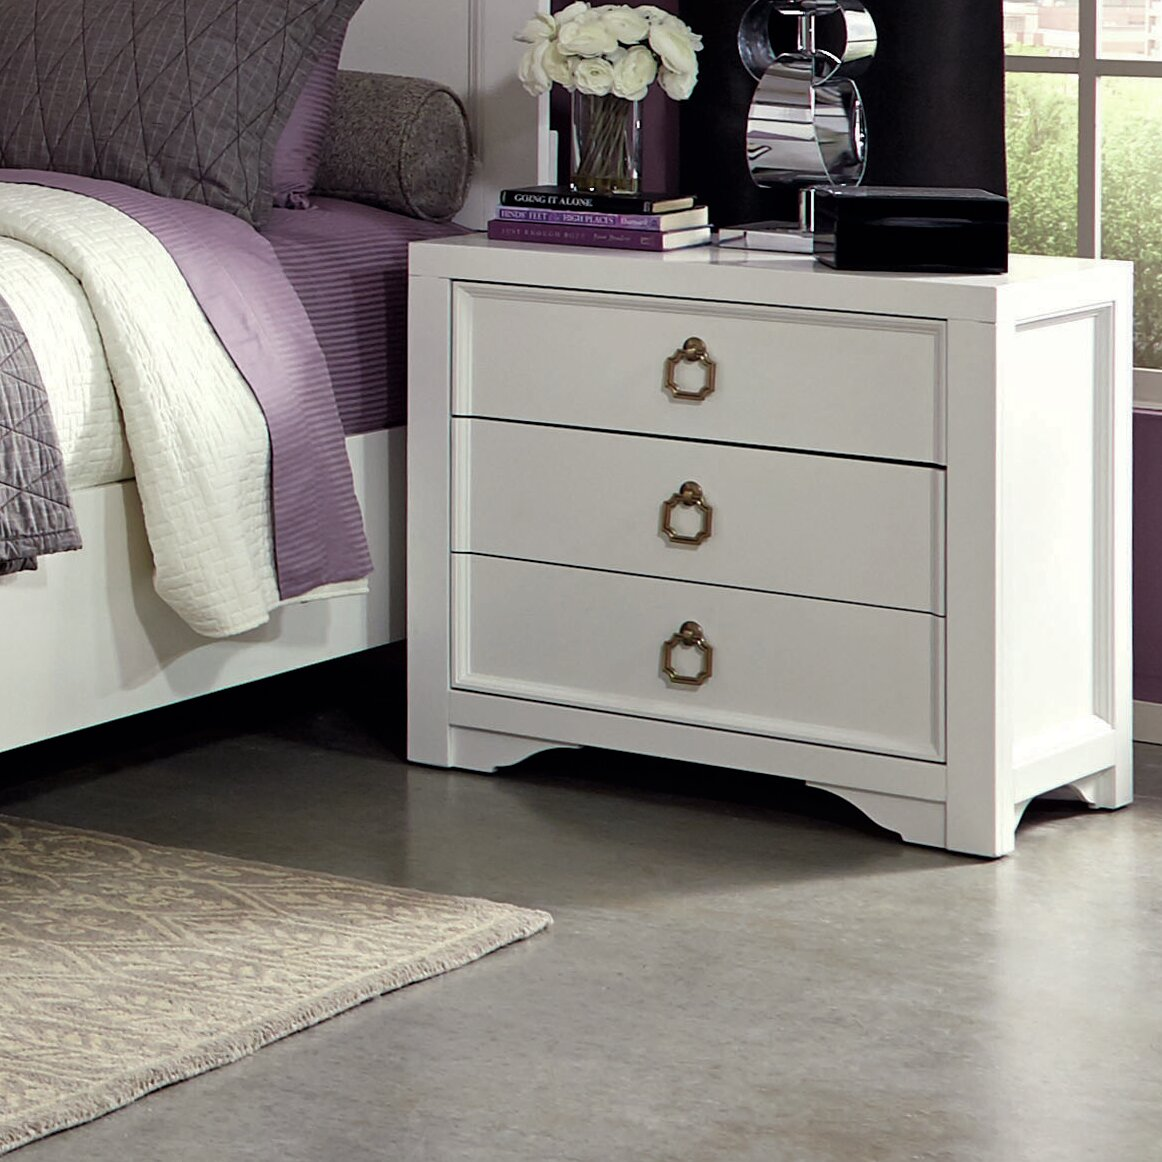 Donny Osmond Storage Bedroom Bench Reviews: Donny Osmond Furiani 3 Drawer Chest